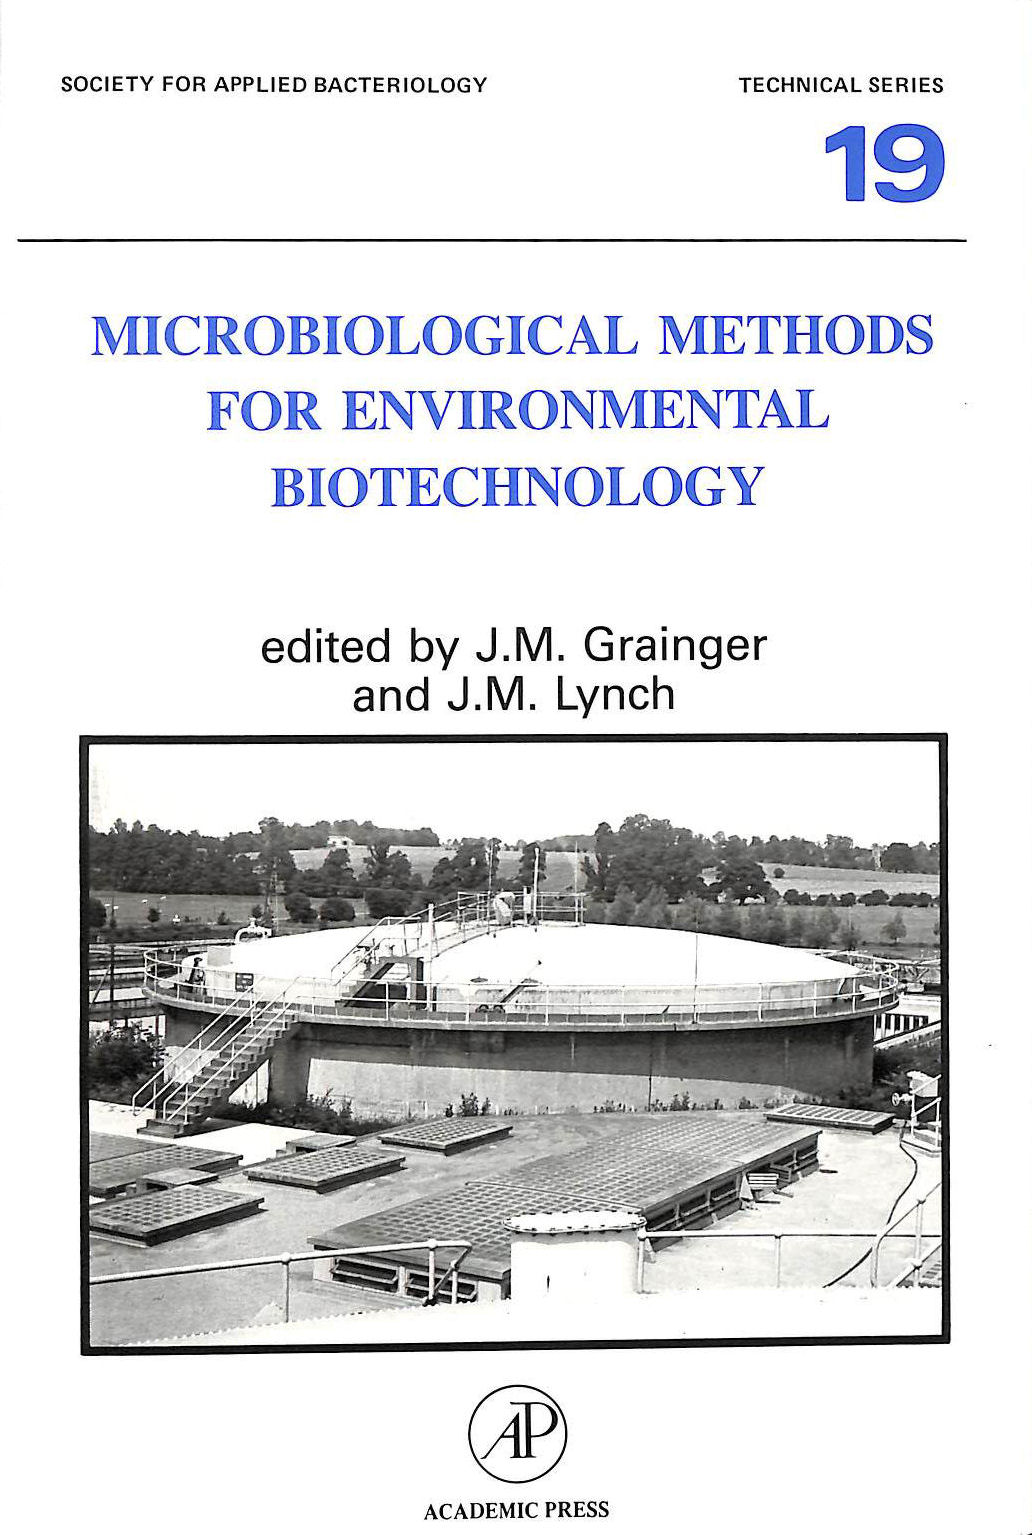 Image for Microbiological Methods for Environmental Biotechnology (Technical Series (Society for Applied Bacteriology))